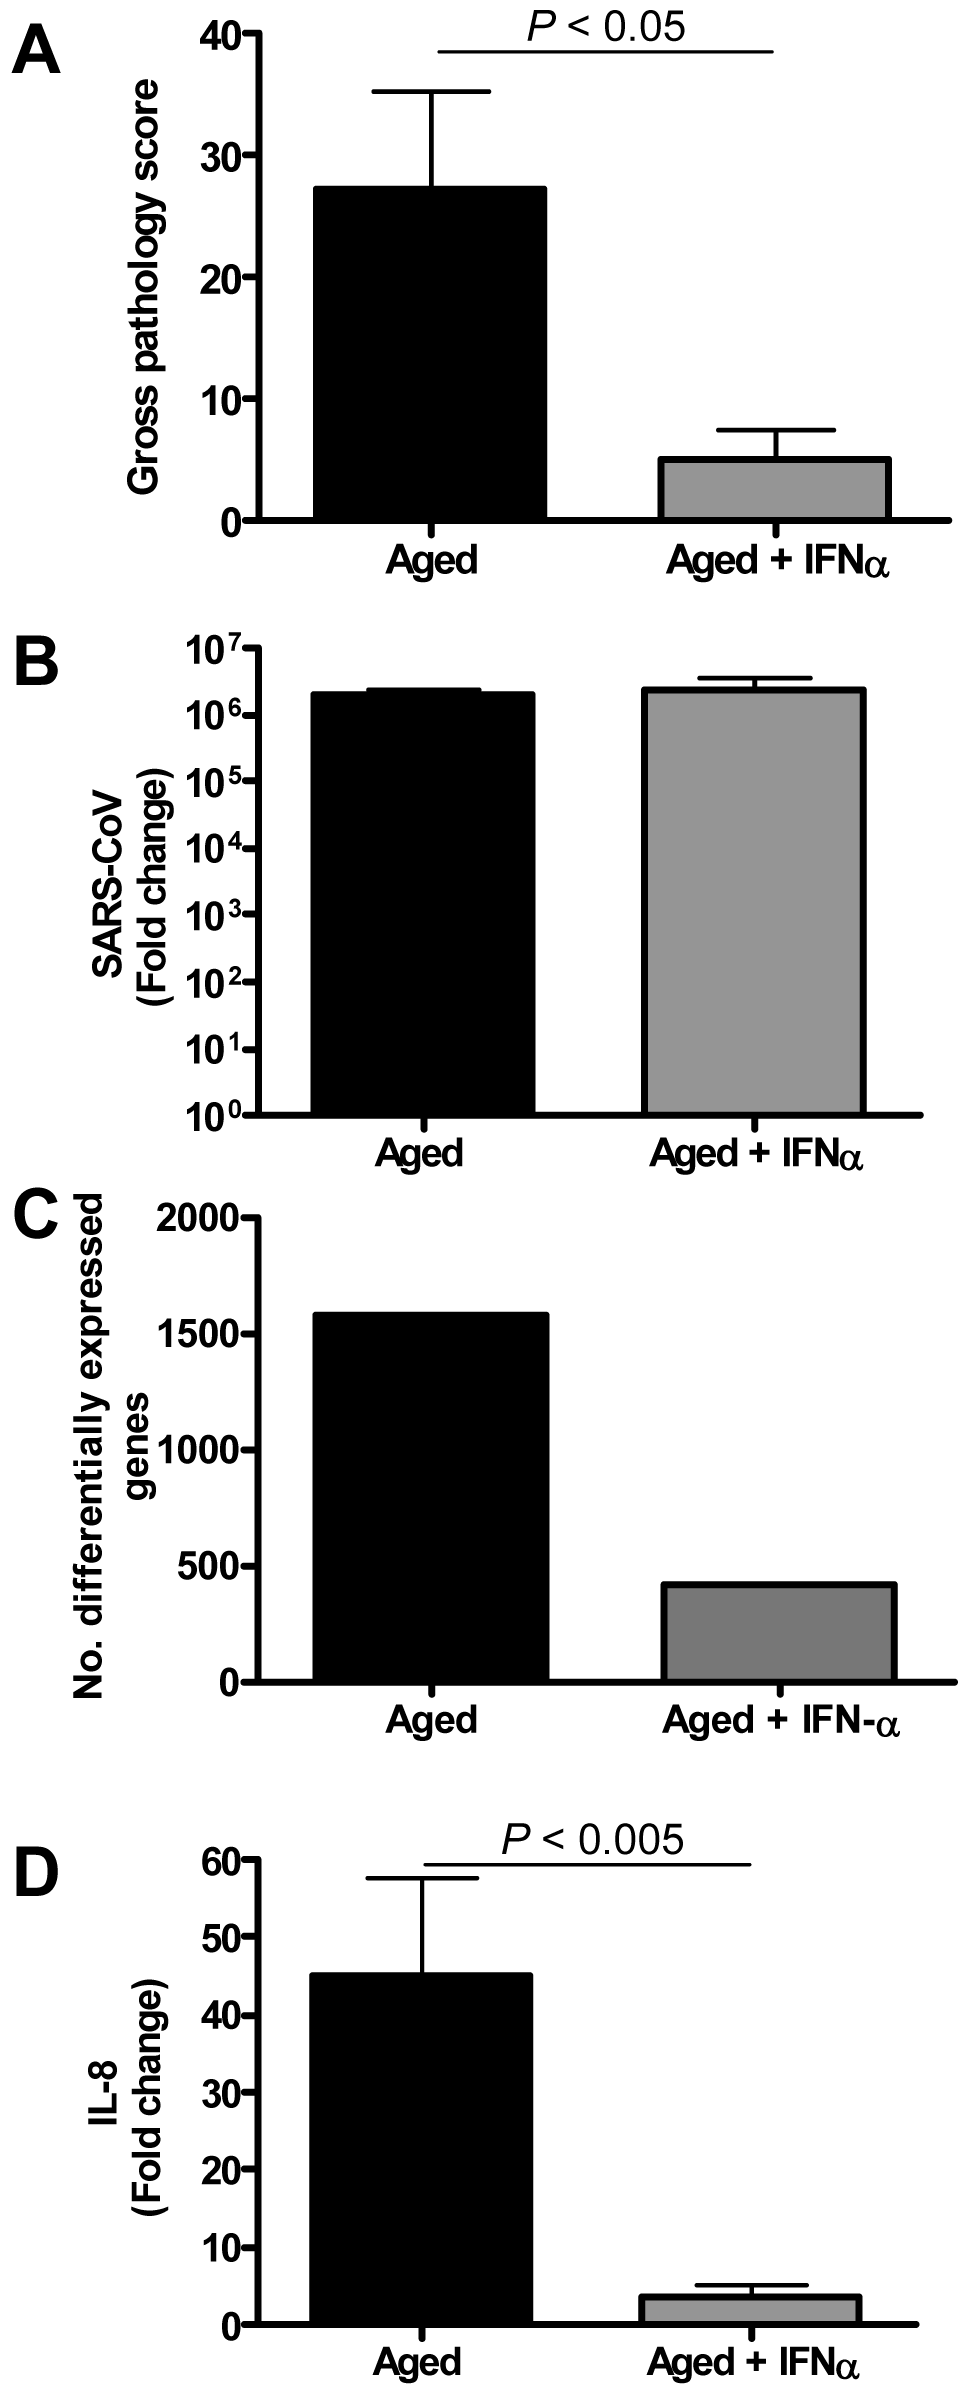 Anti-inflammatory type I IFN inhibits virus-induced ALI in aged SARS-CoV-infected macaques.